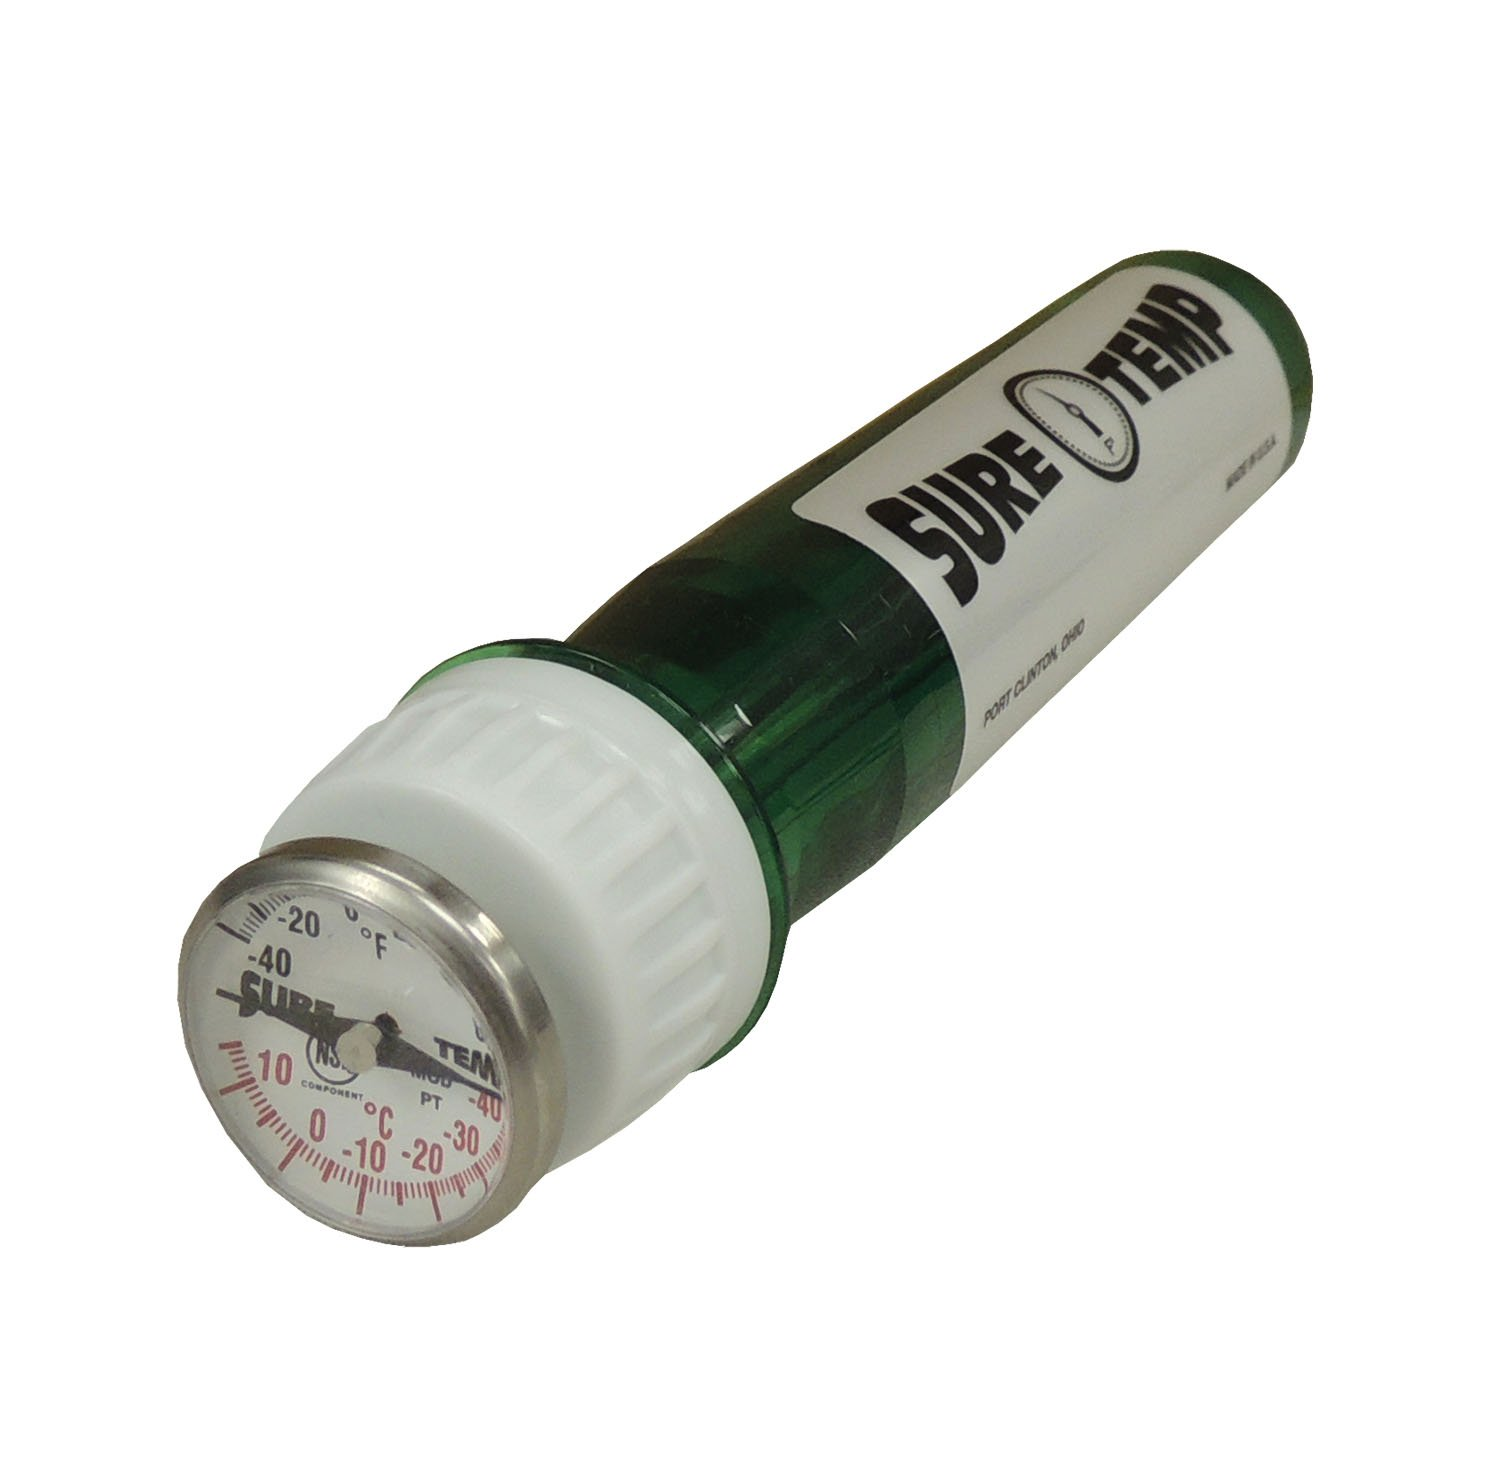 Supco ST1236-31 SURE TEMP THERMOMETER by Supco